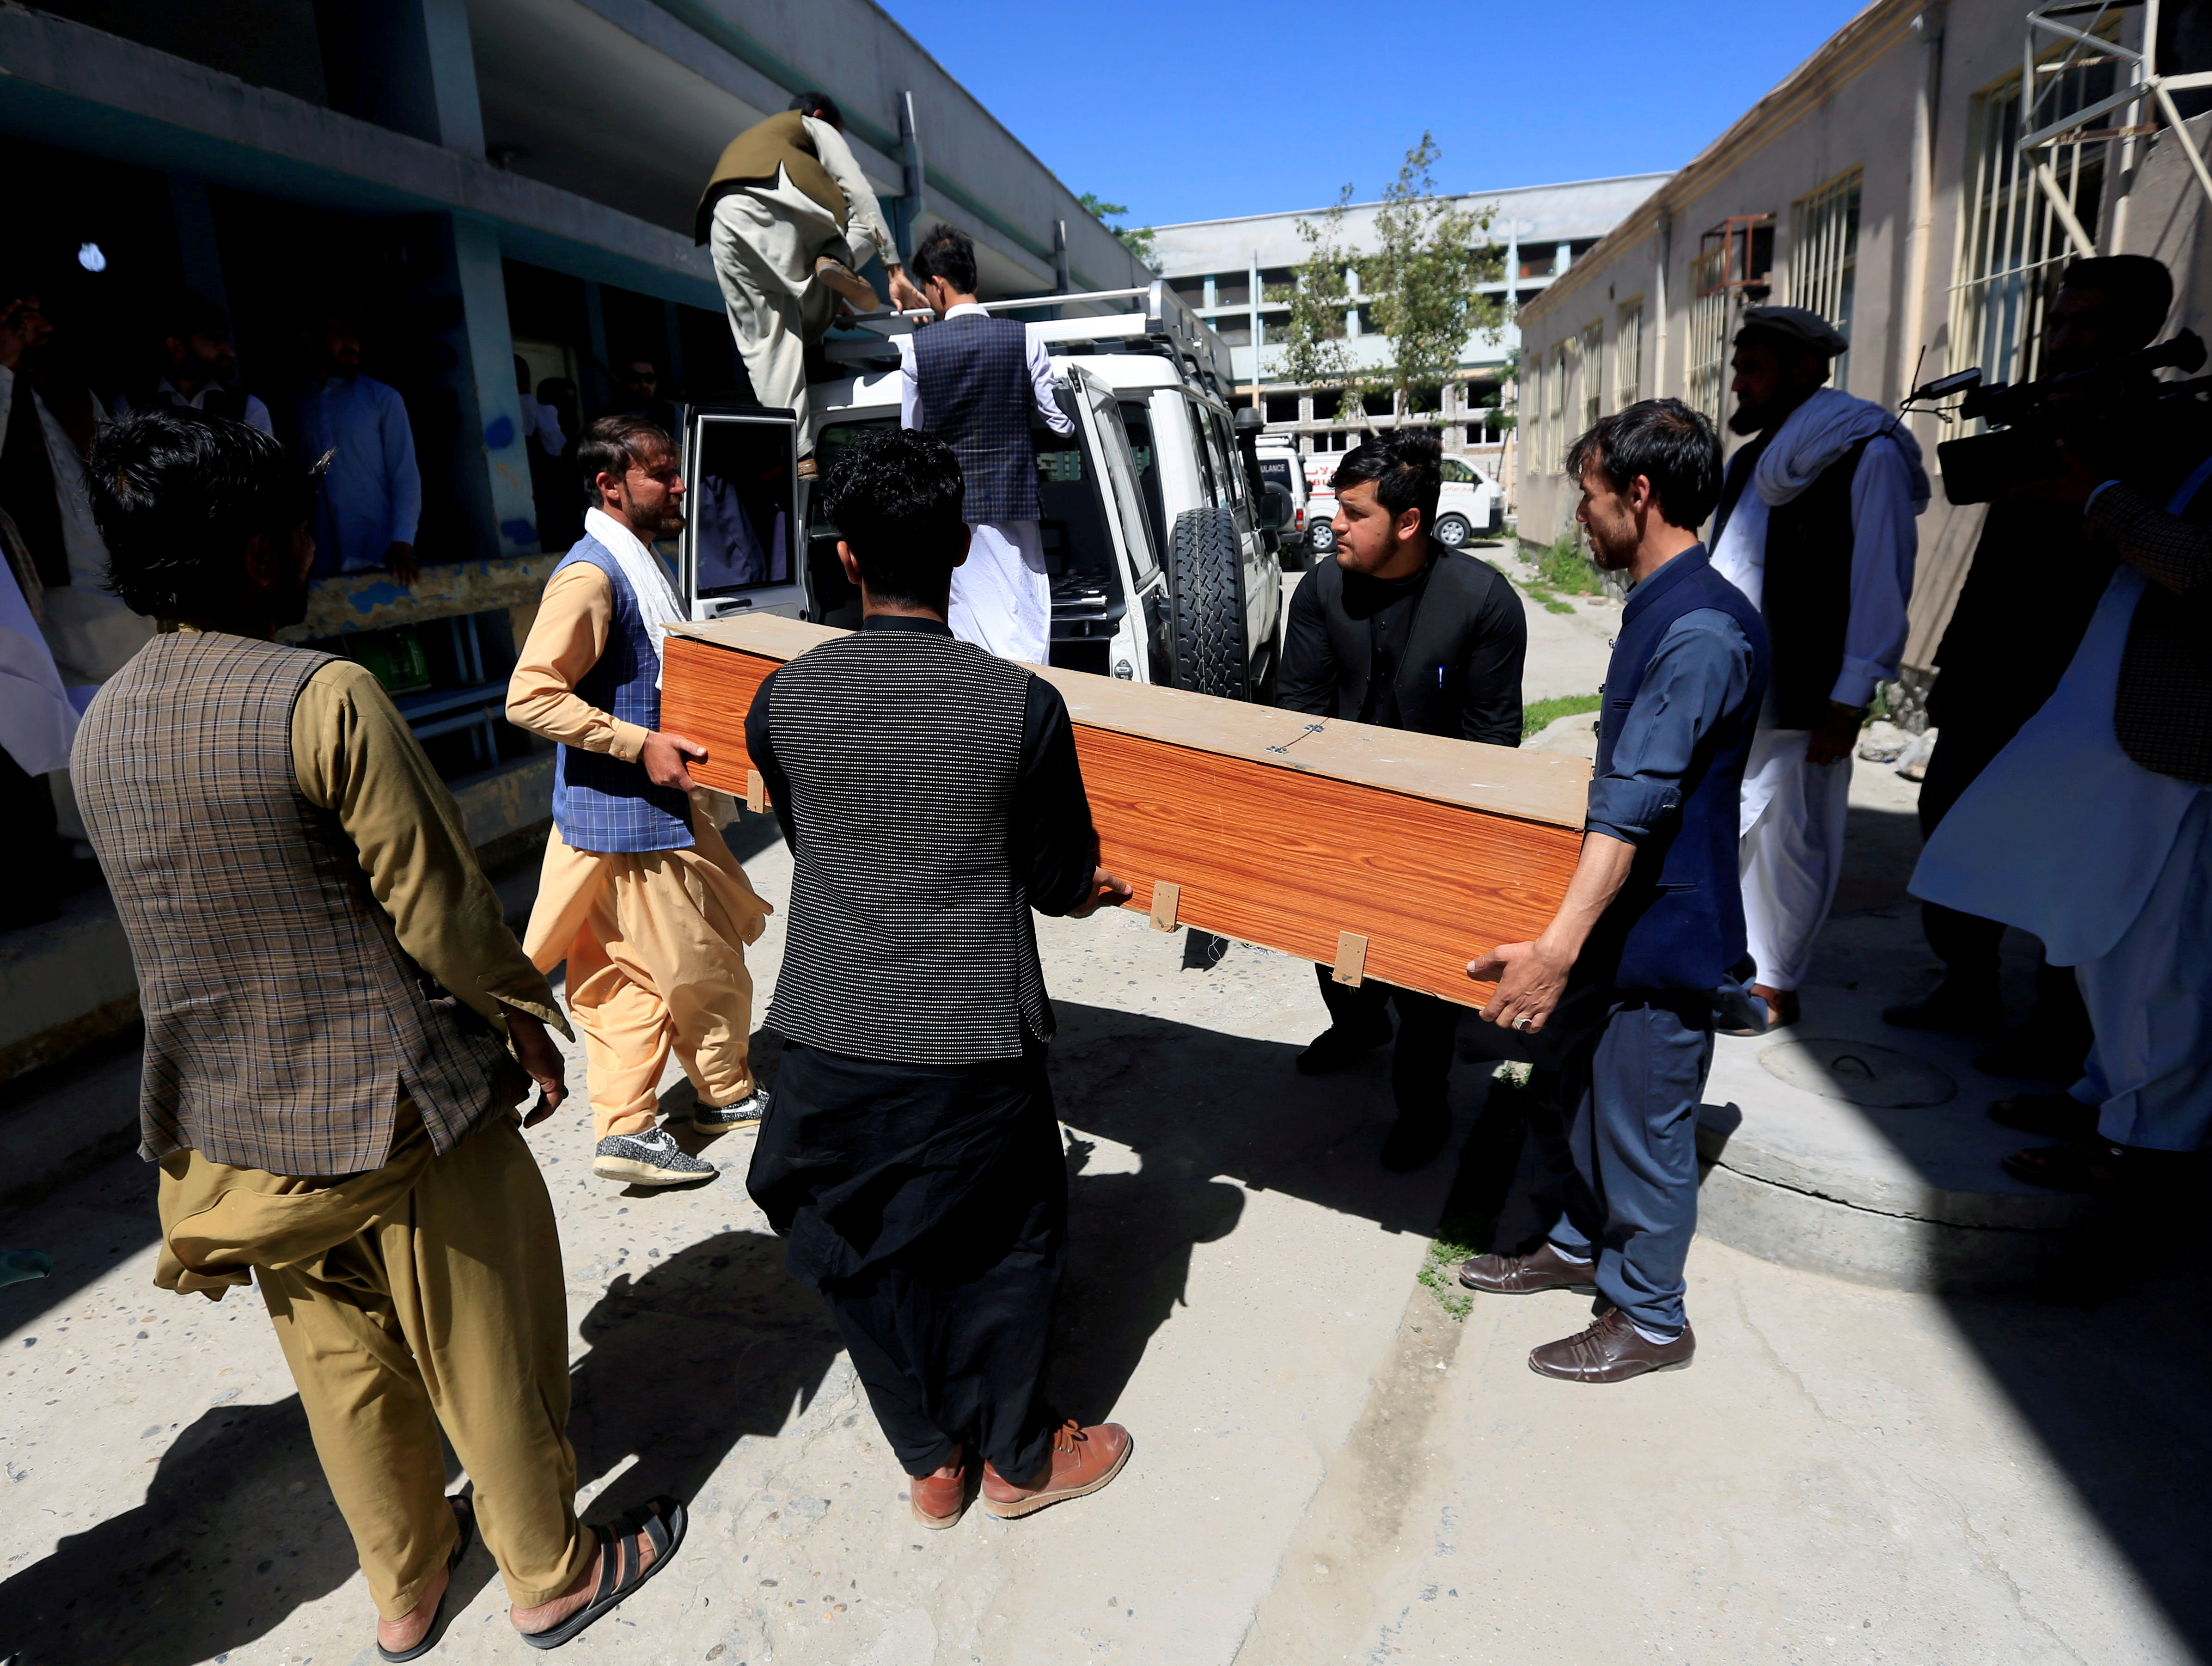 Afghan men carry the coffin of one of the three female polio vaccination health workers who were shot and killed by unknown gunmen at two separate locations, in Jalalabad, Afghanistan, March 30, 2021. REUTERS/Parwiz/File Photo